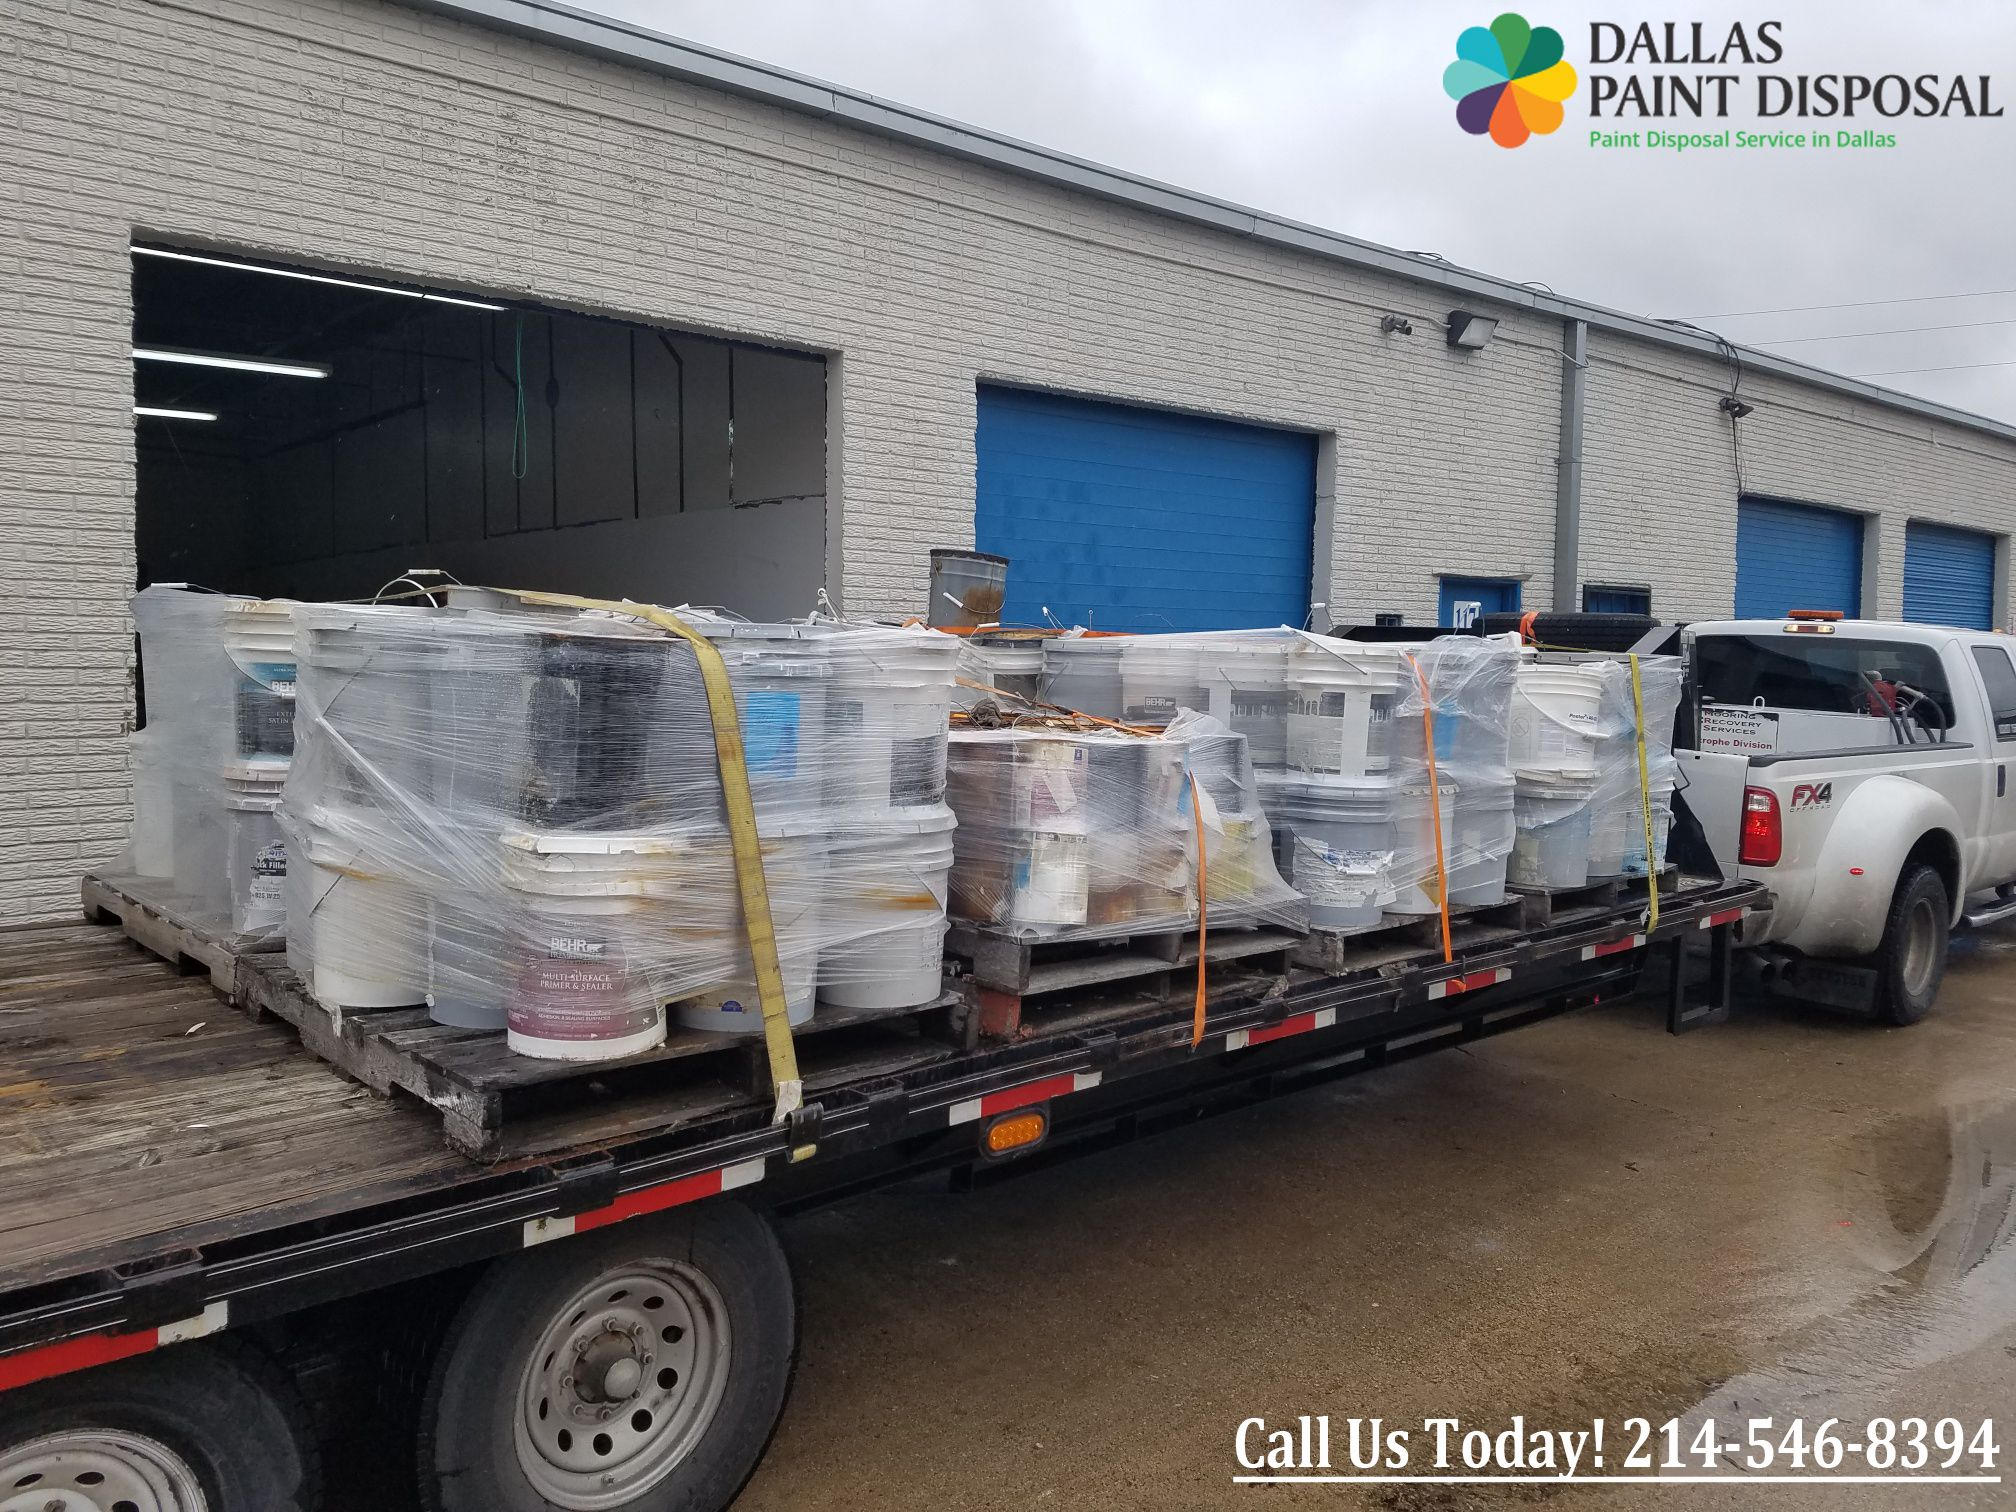 Dallas paint disposal is dallas most trusted cost